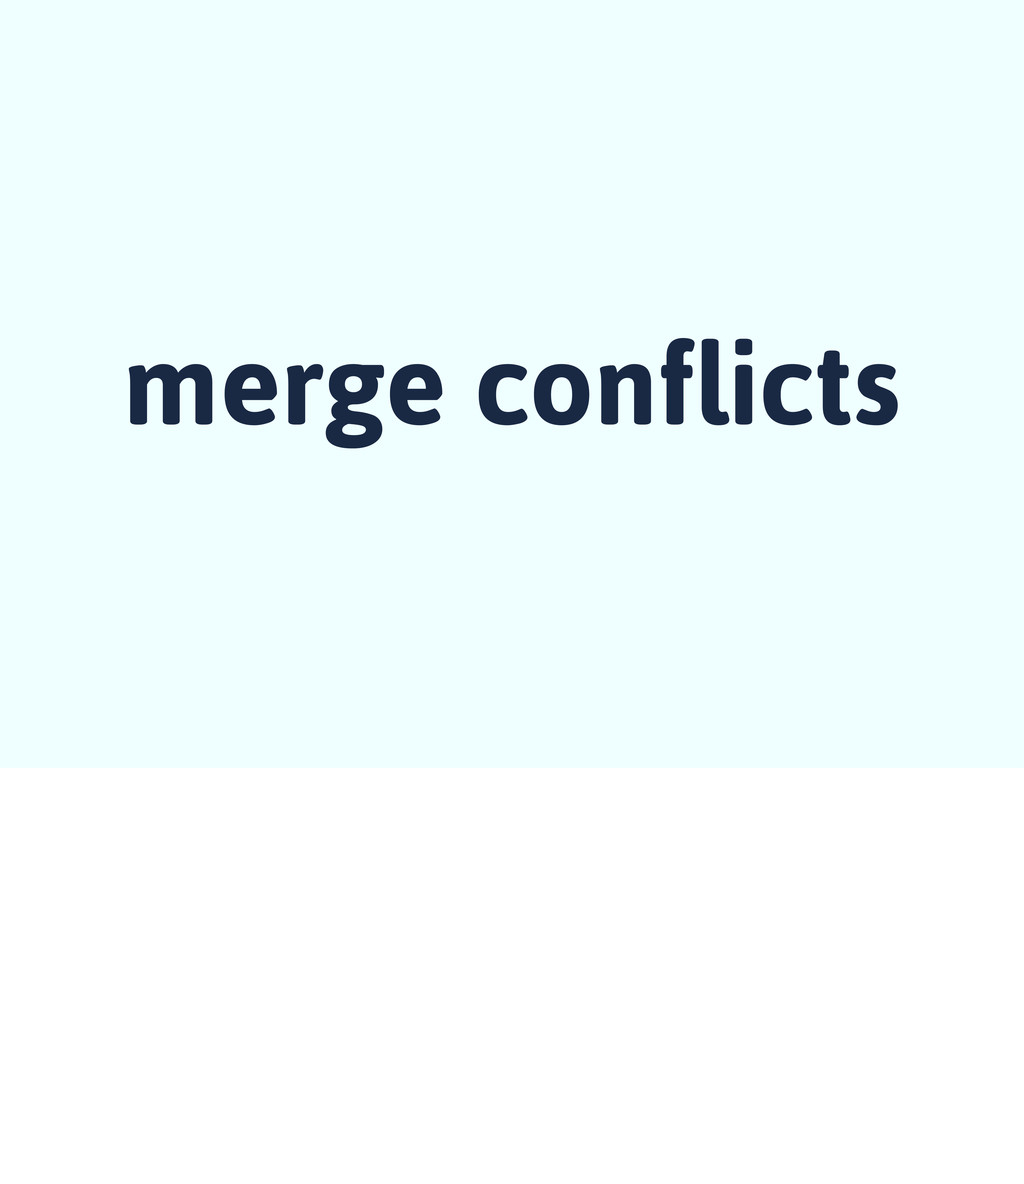 merge conflicts